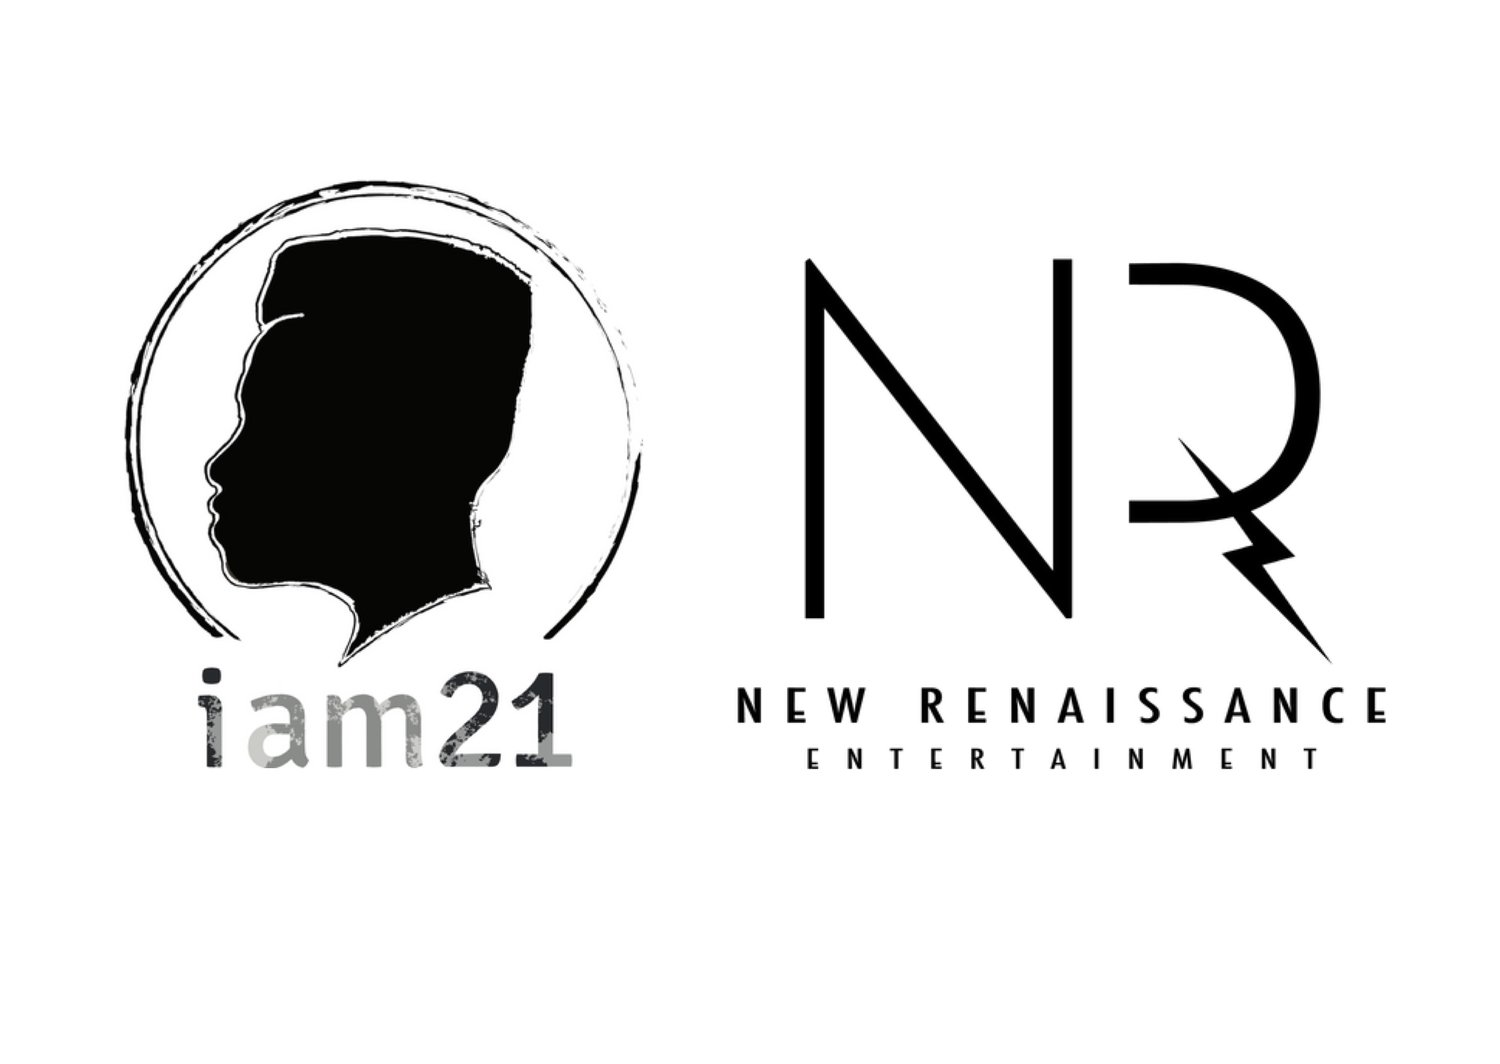 New Renaissance Entertainment